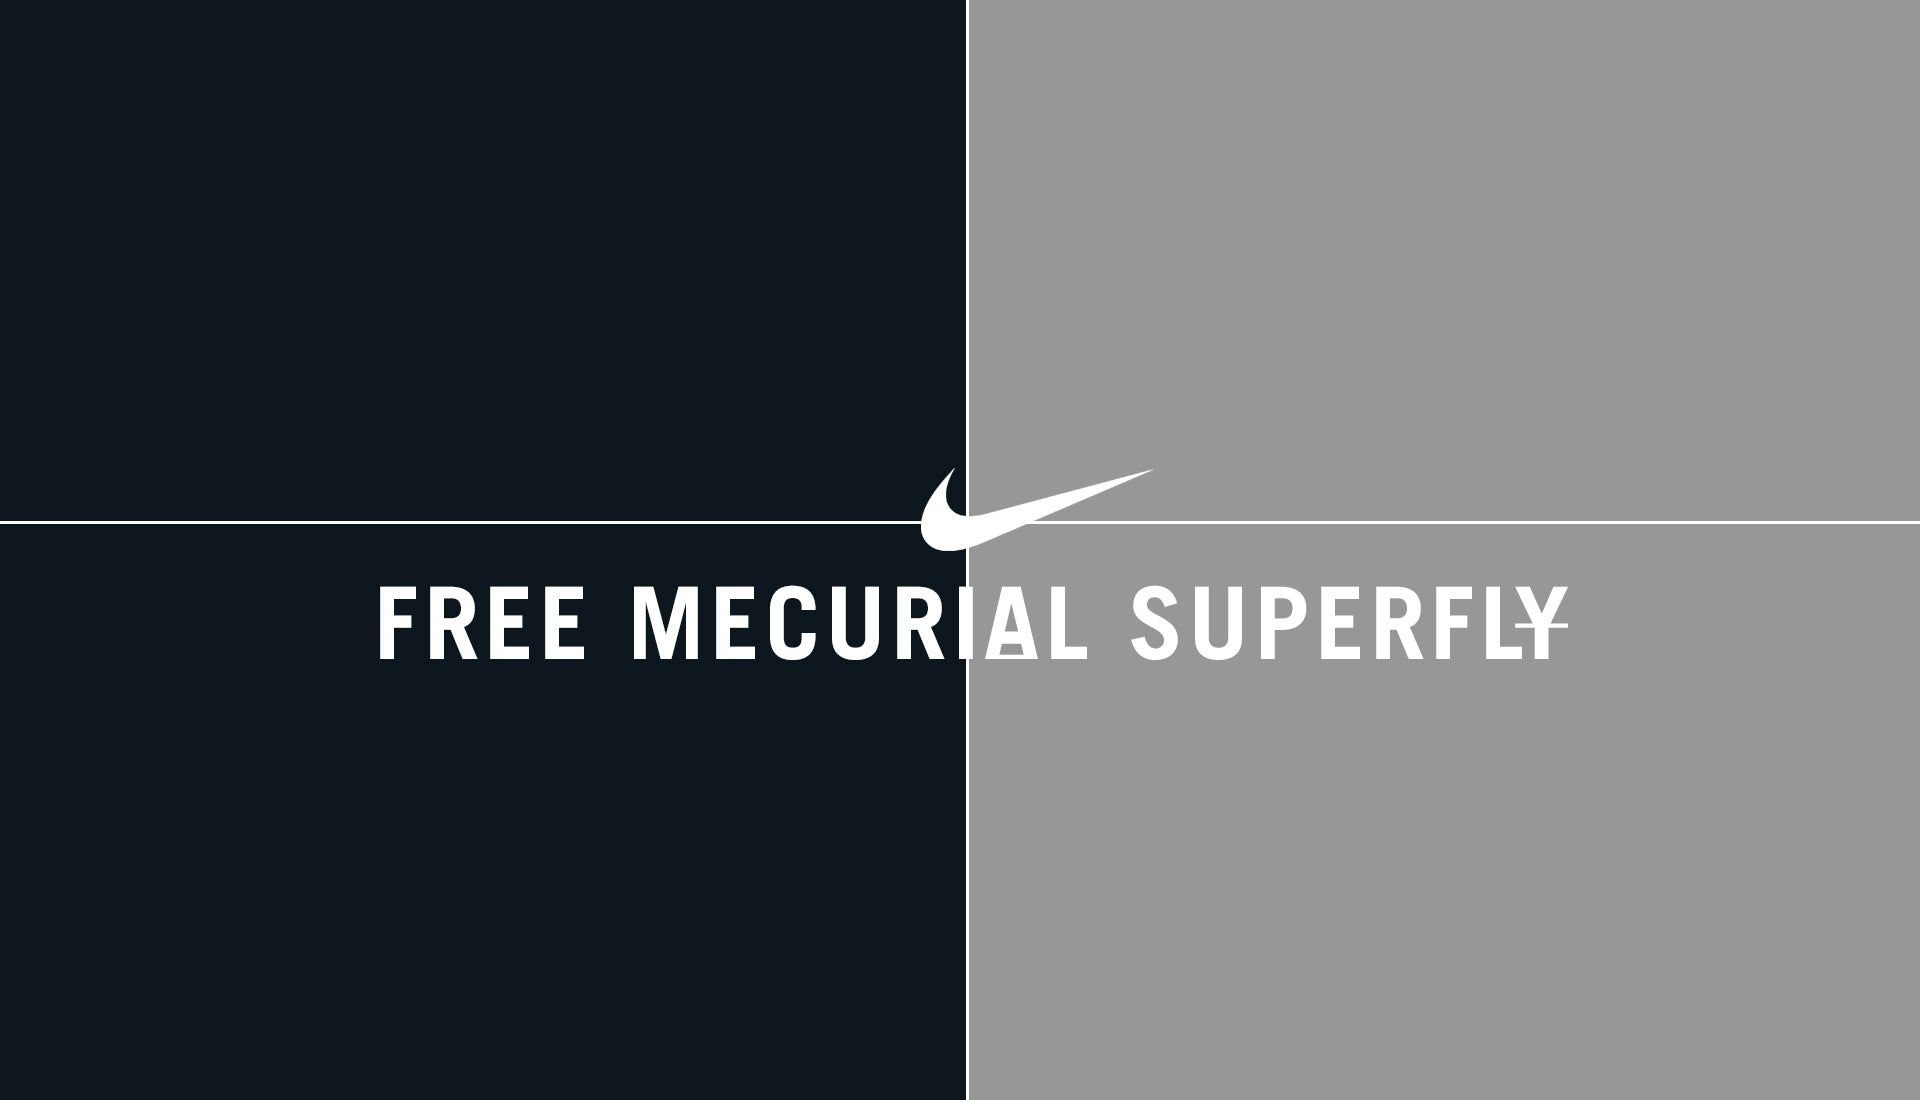 8c879d3a443b8 HTM FREE MERCURIAL SUPERFLY - FEATURE